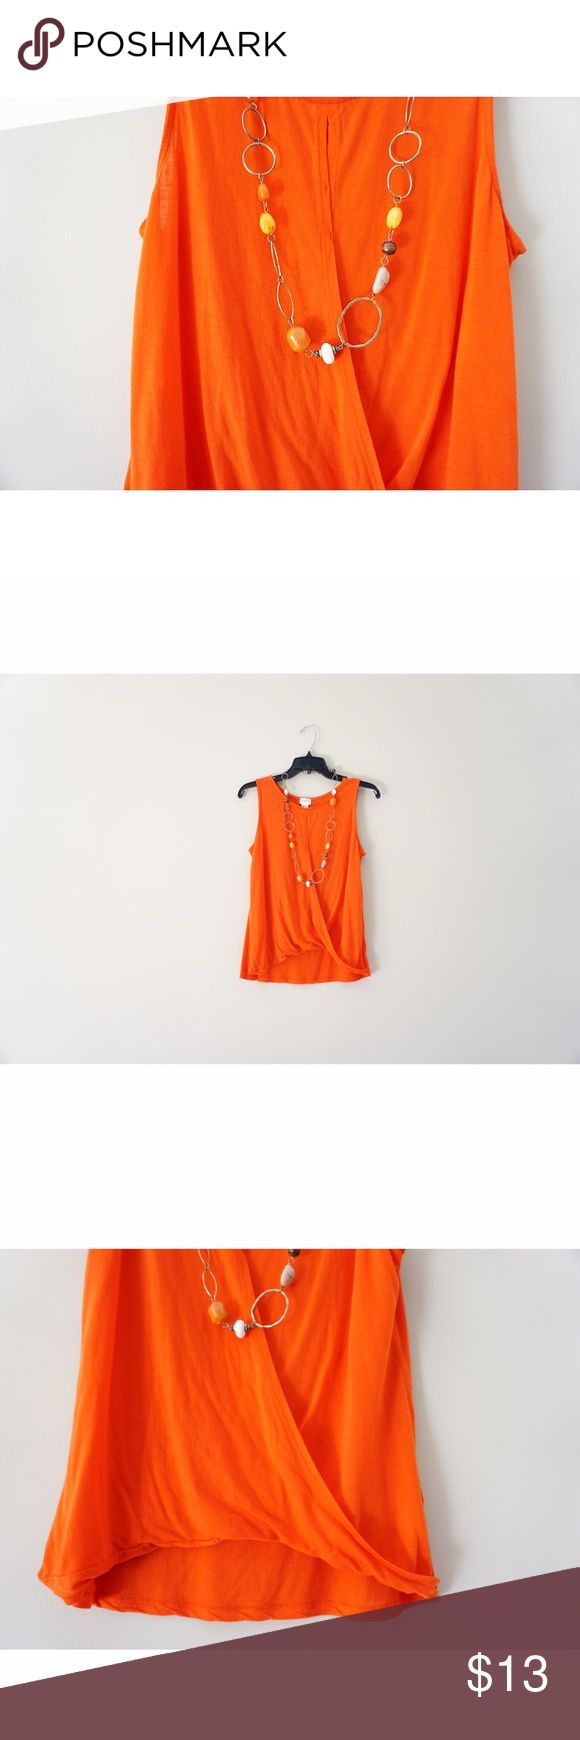 H&M (Conscious Collection) Tank Pumpkin orange and perfect for fall 🎃🍂 High-low cut (shorter in the front, longer in the back) with multiple open slits down the front! Looks best paired with mid-waisted or high-waisted bottoms. Necklace in photo comes with purchase of shirt. If you have any questions please let me know! 😉 H&M Tops Tank Tops